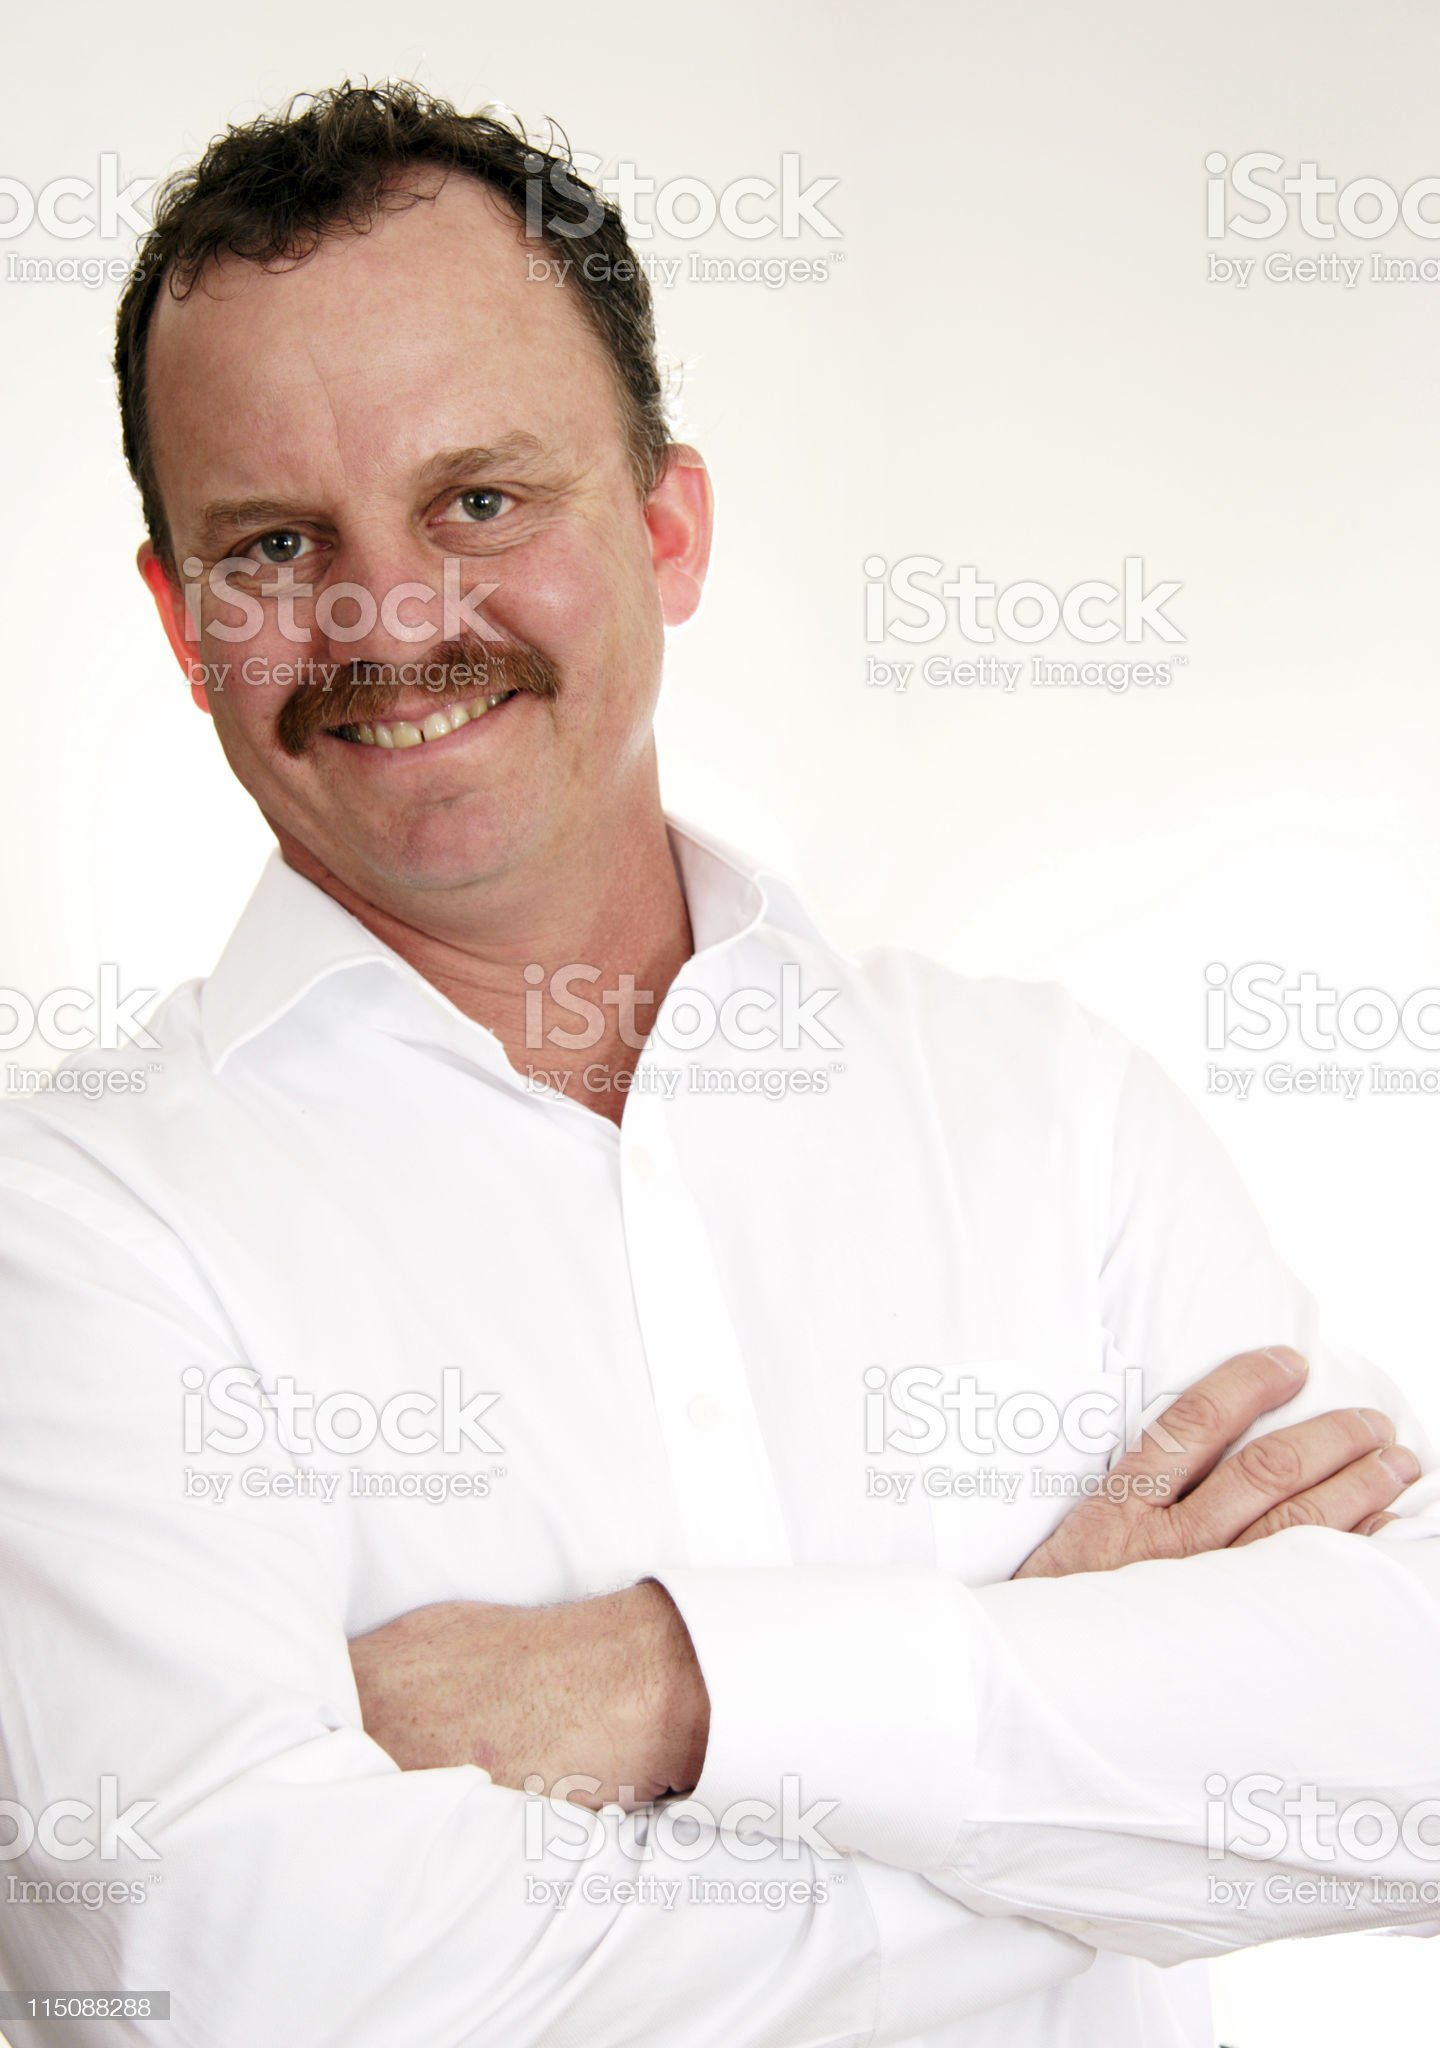 adult man  - middle aged male royalty-free stock photo